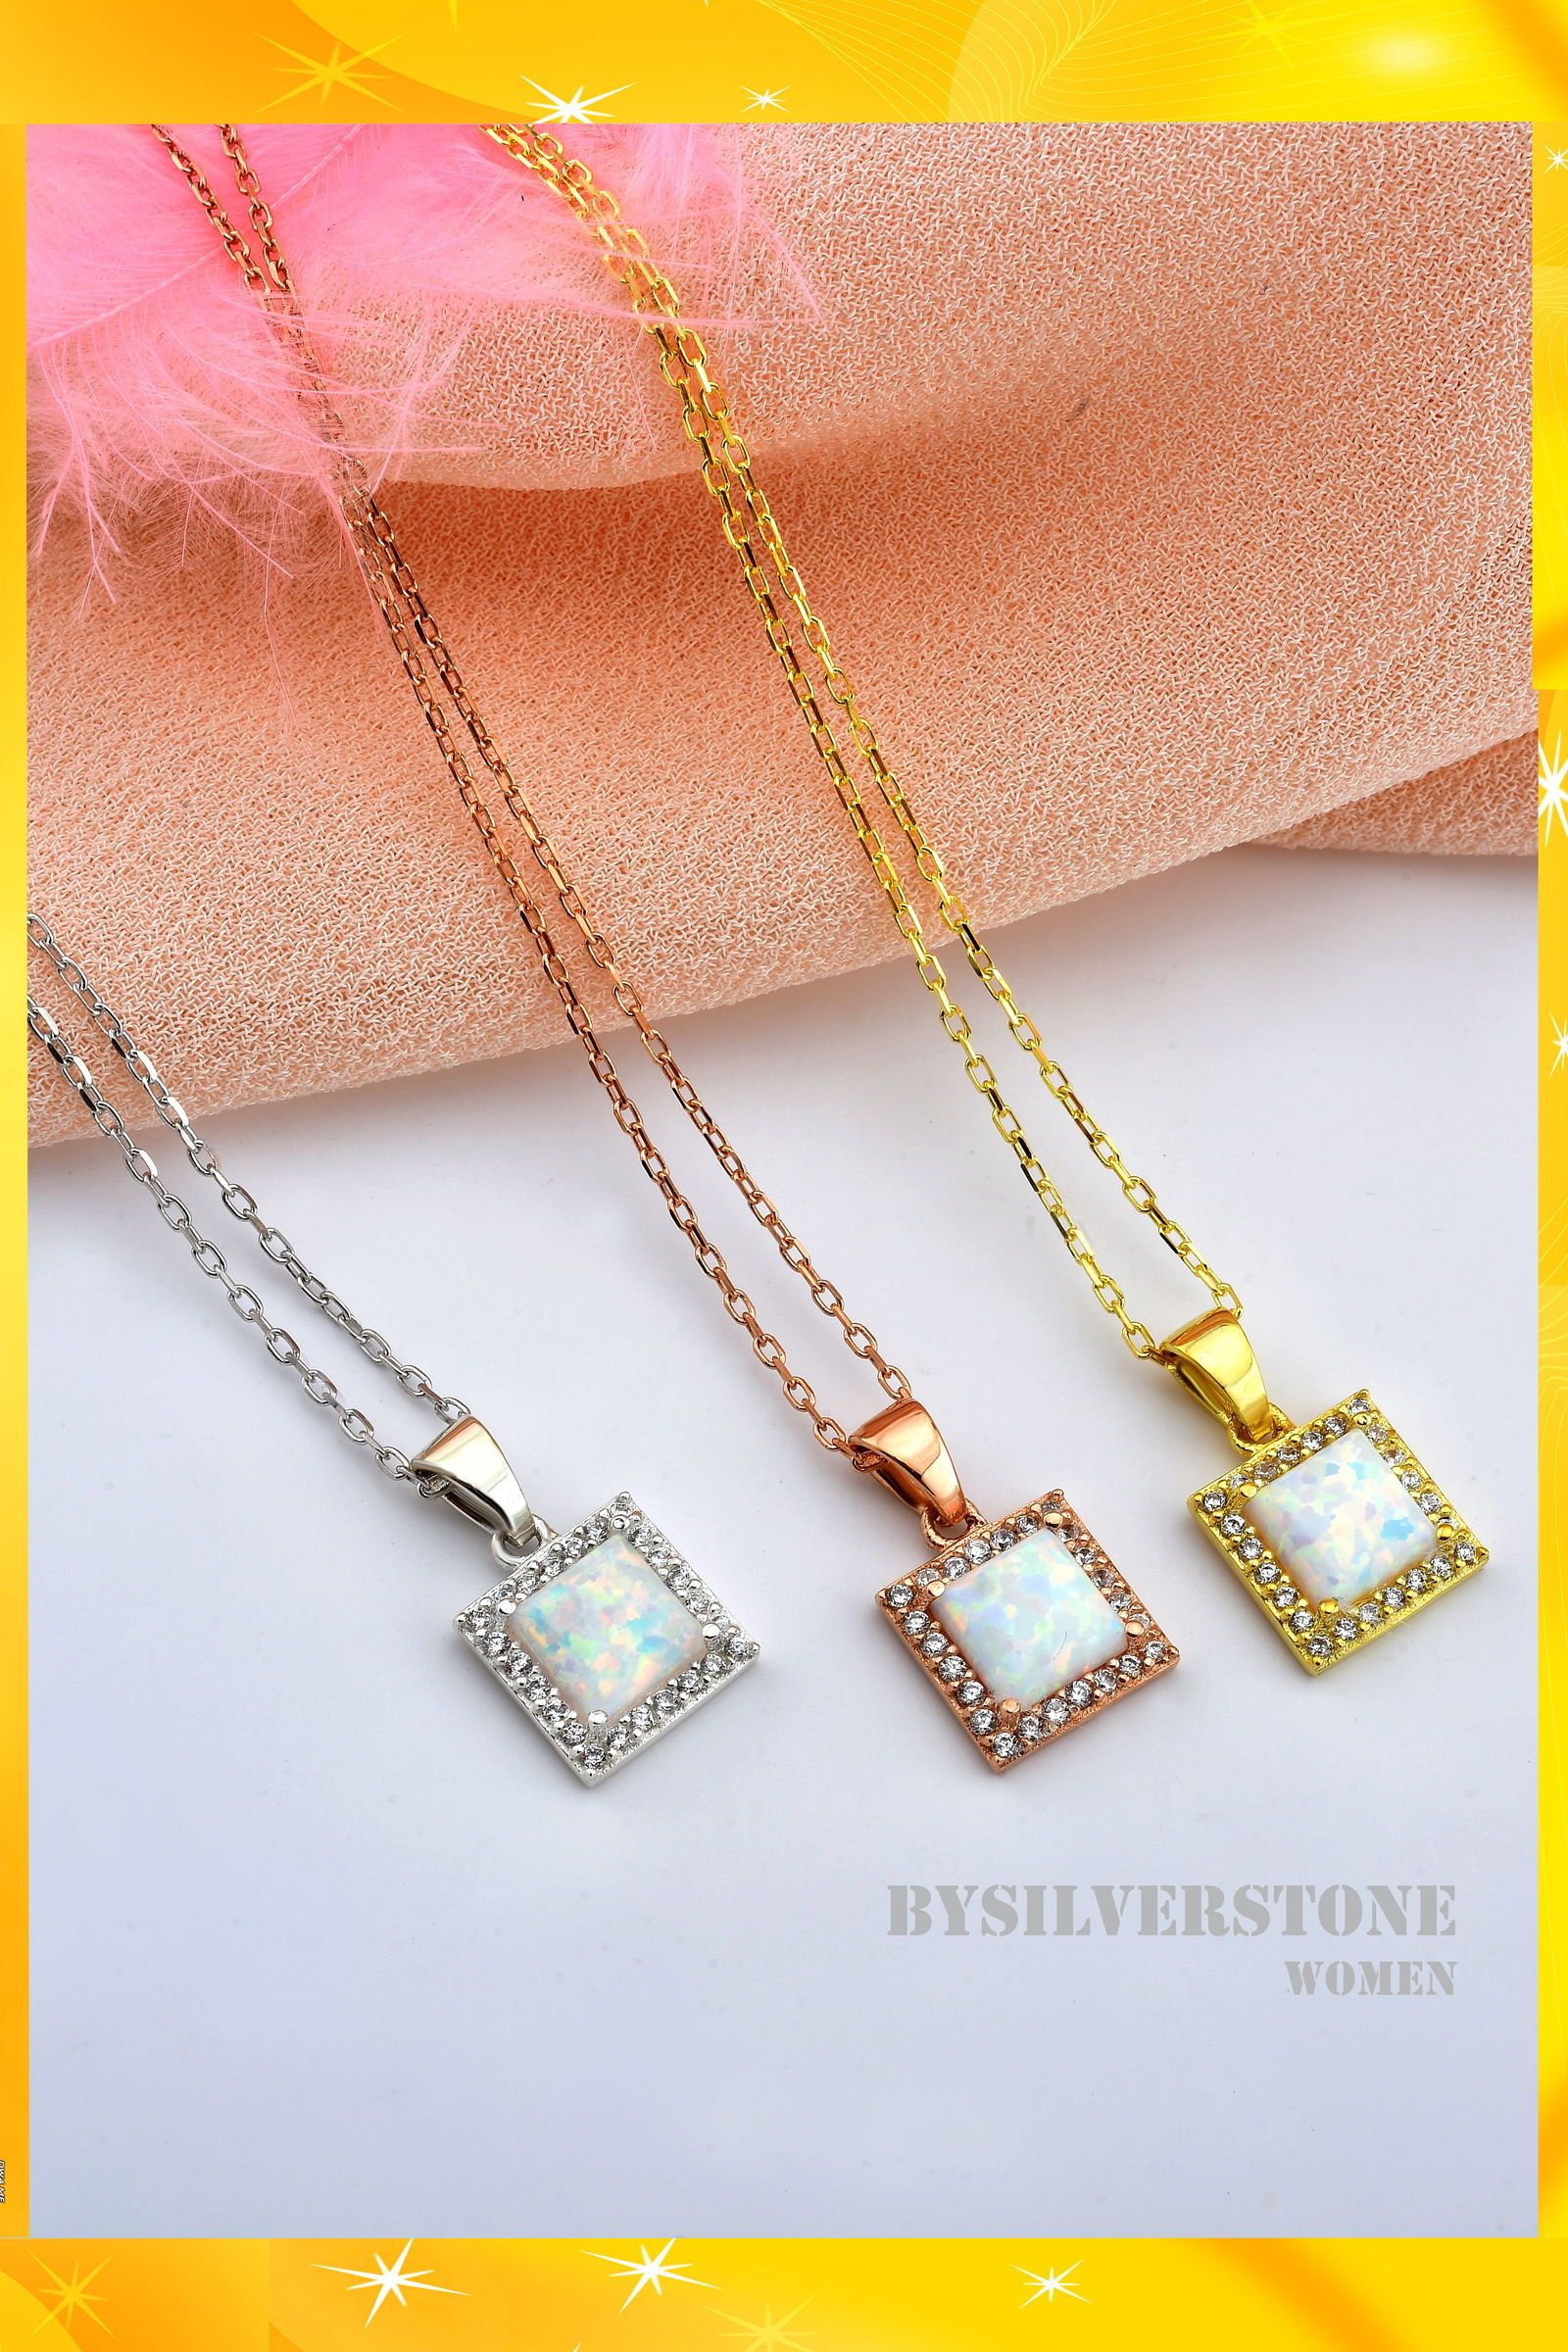 14k Gold Square Opal Pendant Dainty Opal Necklace Gold Opal Etsy Dainty Opal Necklace Gold Chain With Pendant Bridesmaid Necklace Gift